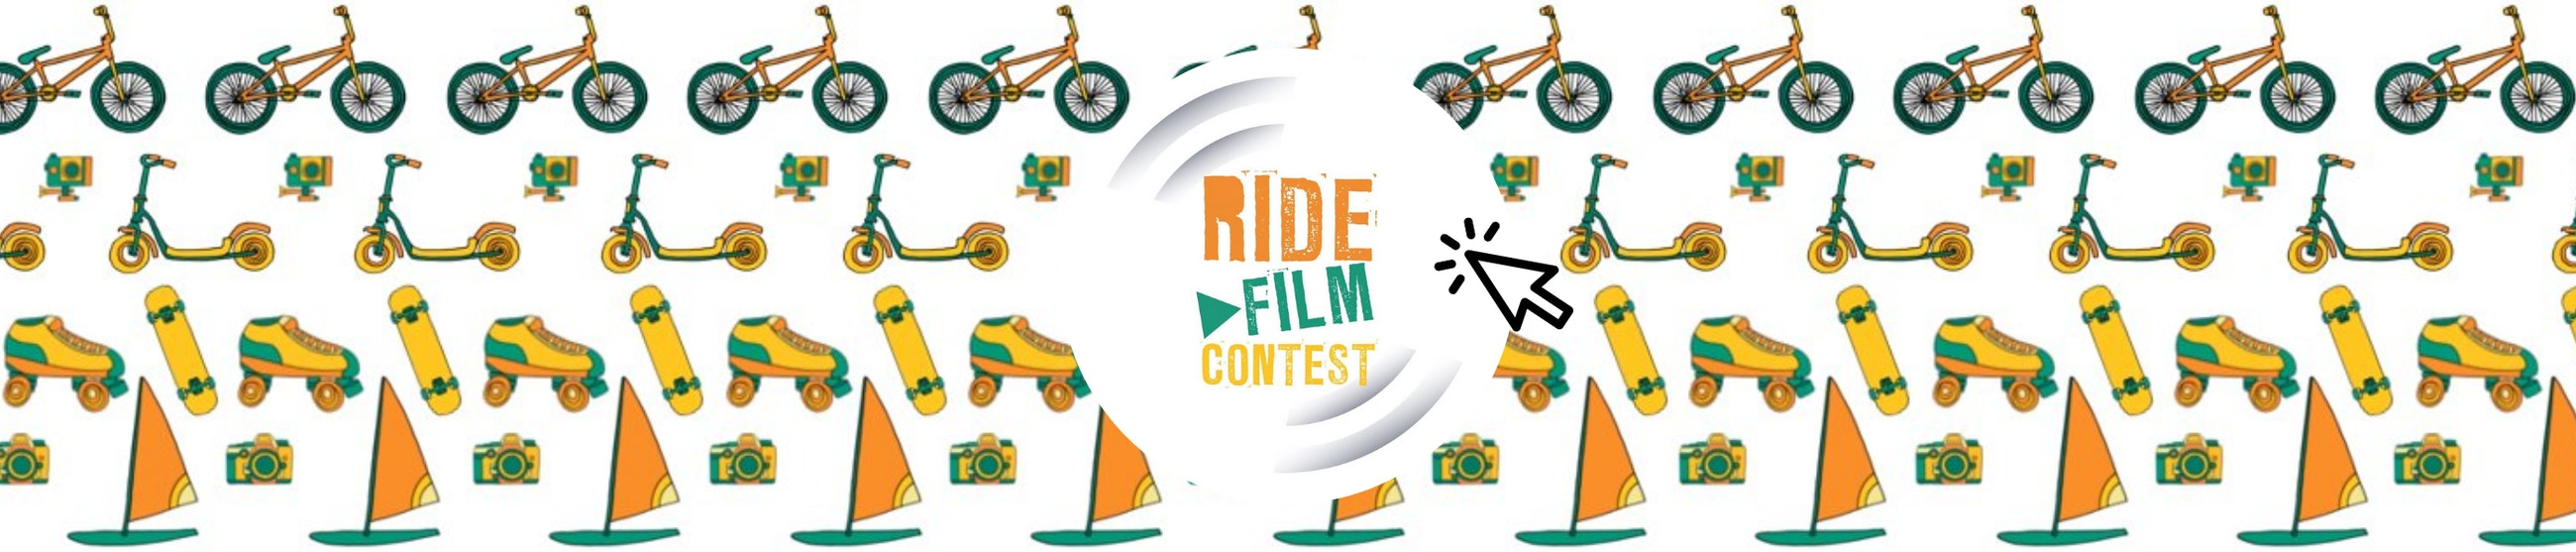 1590470235 ride film contest